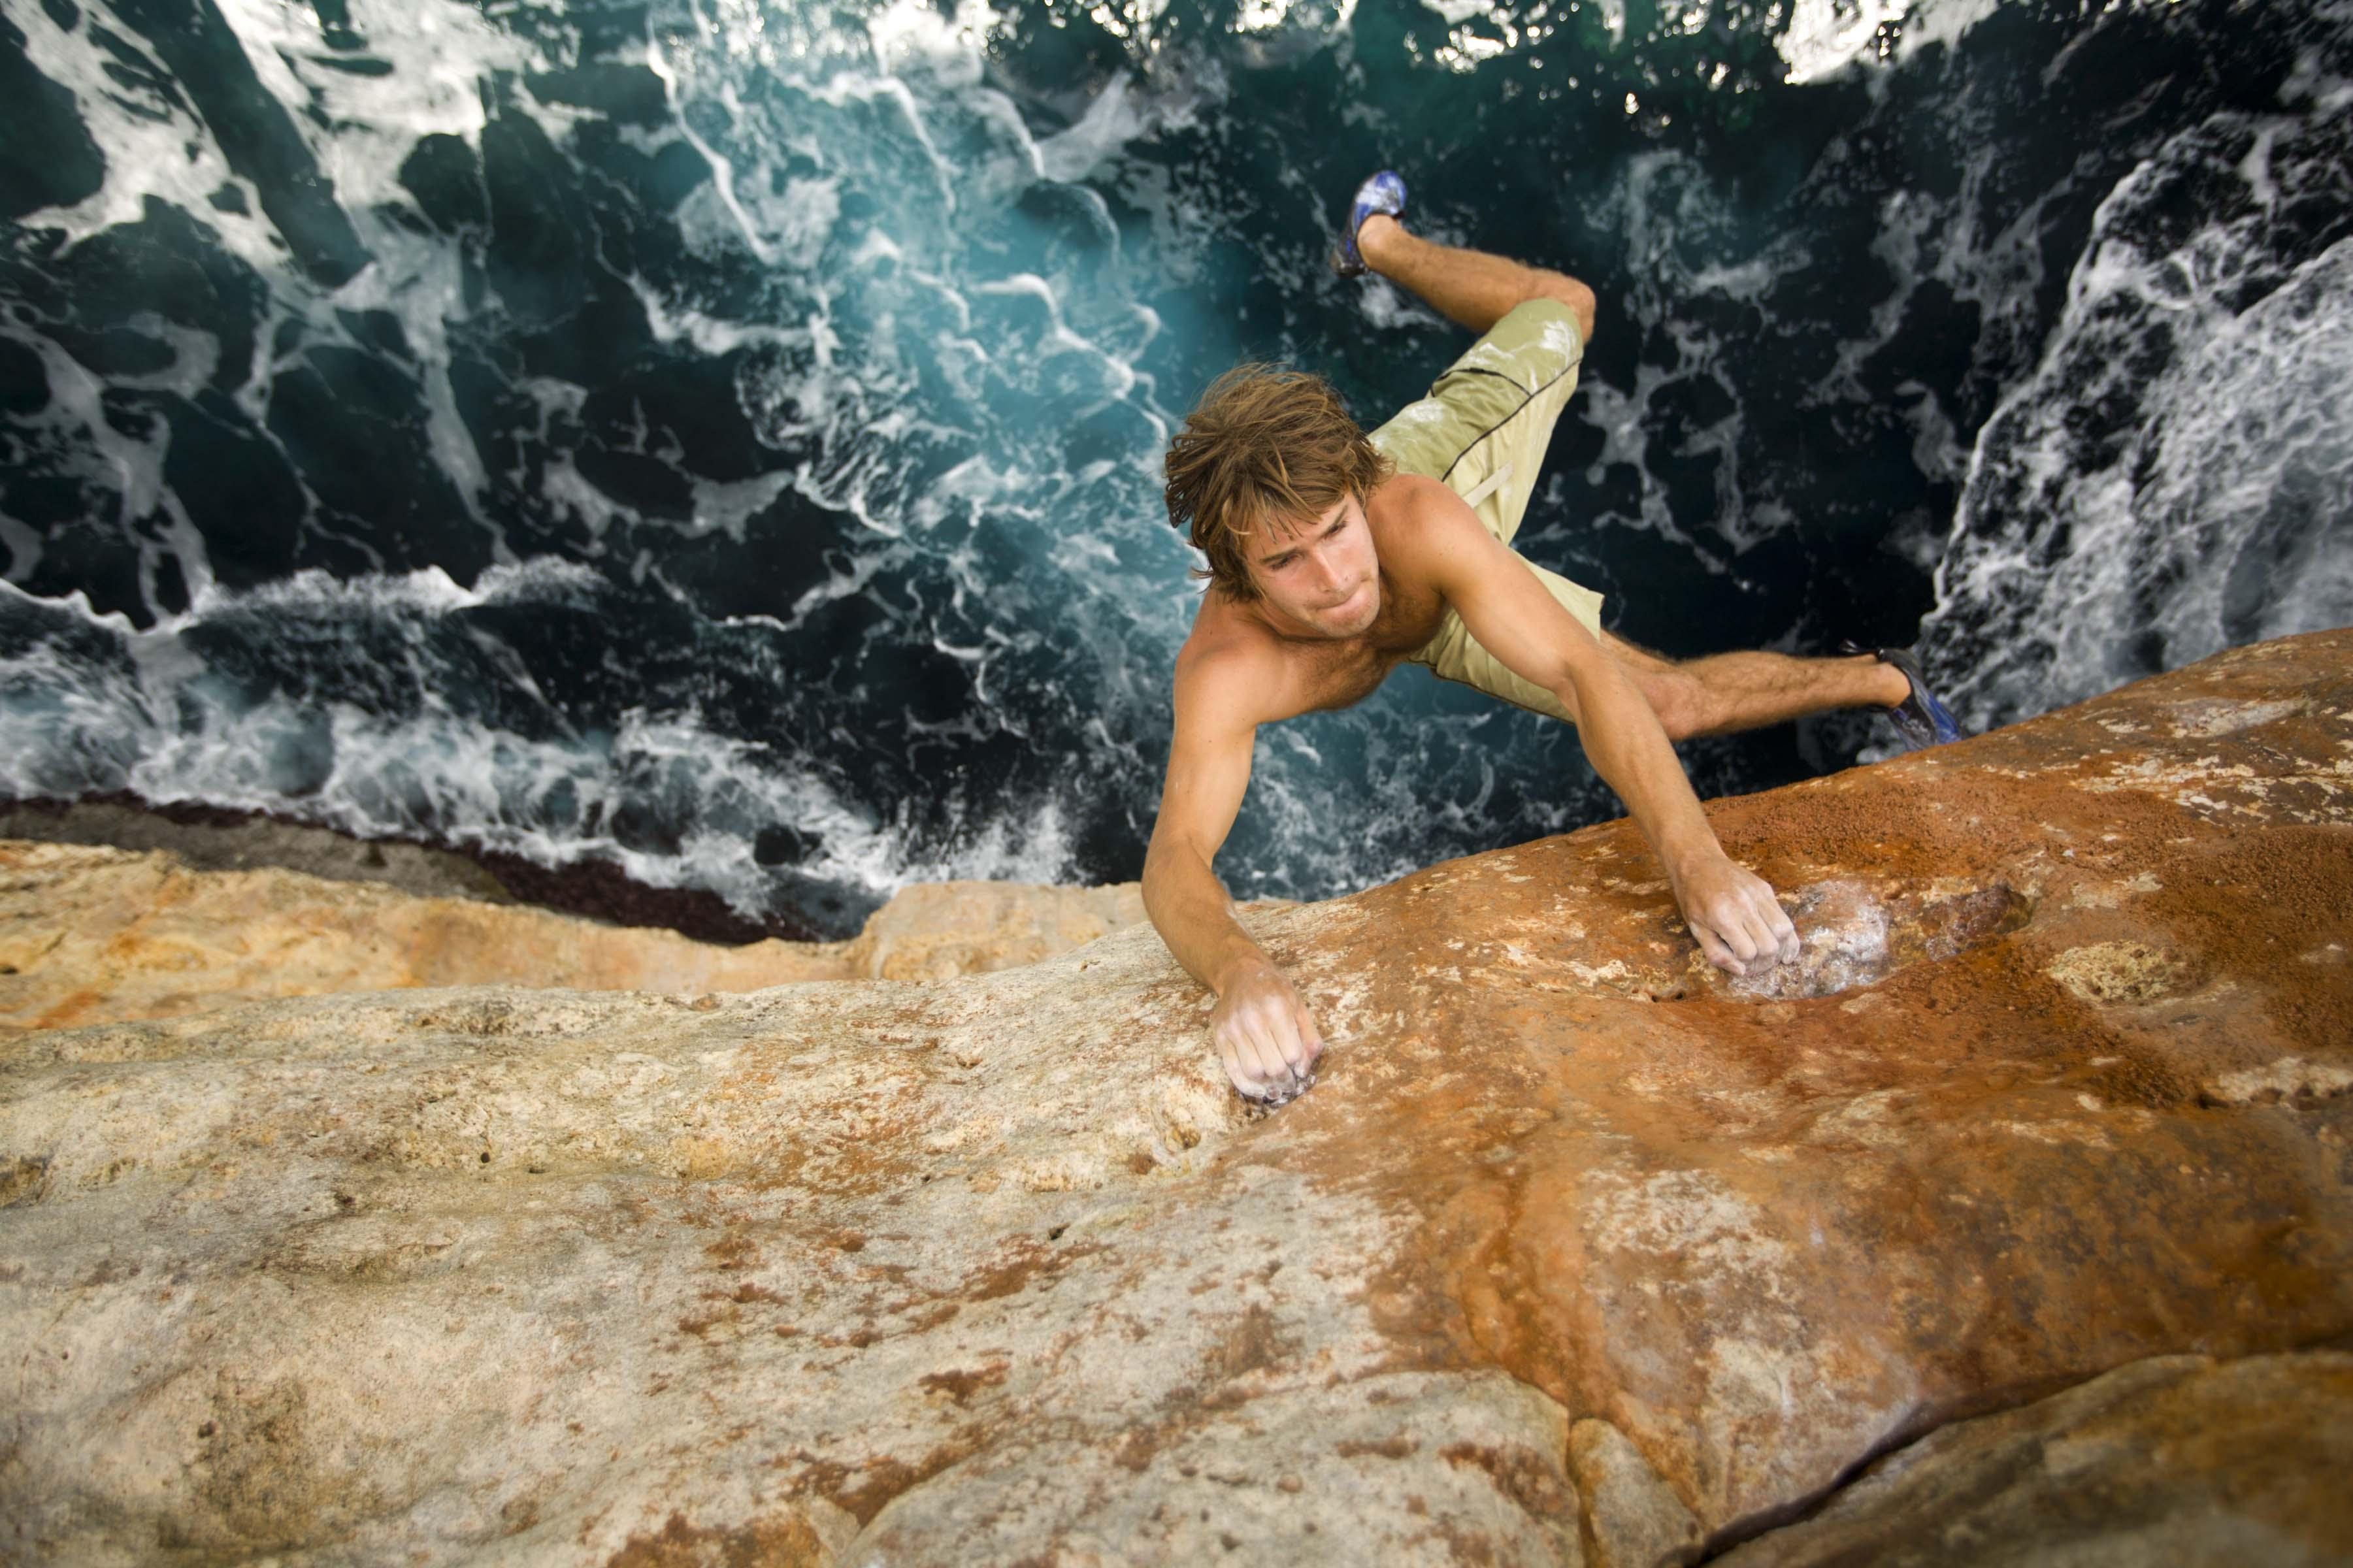 Climbing-Sport Amazing HD Wallpapers - All HD Wallpapers